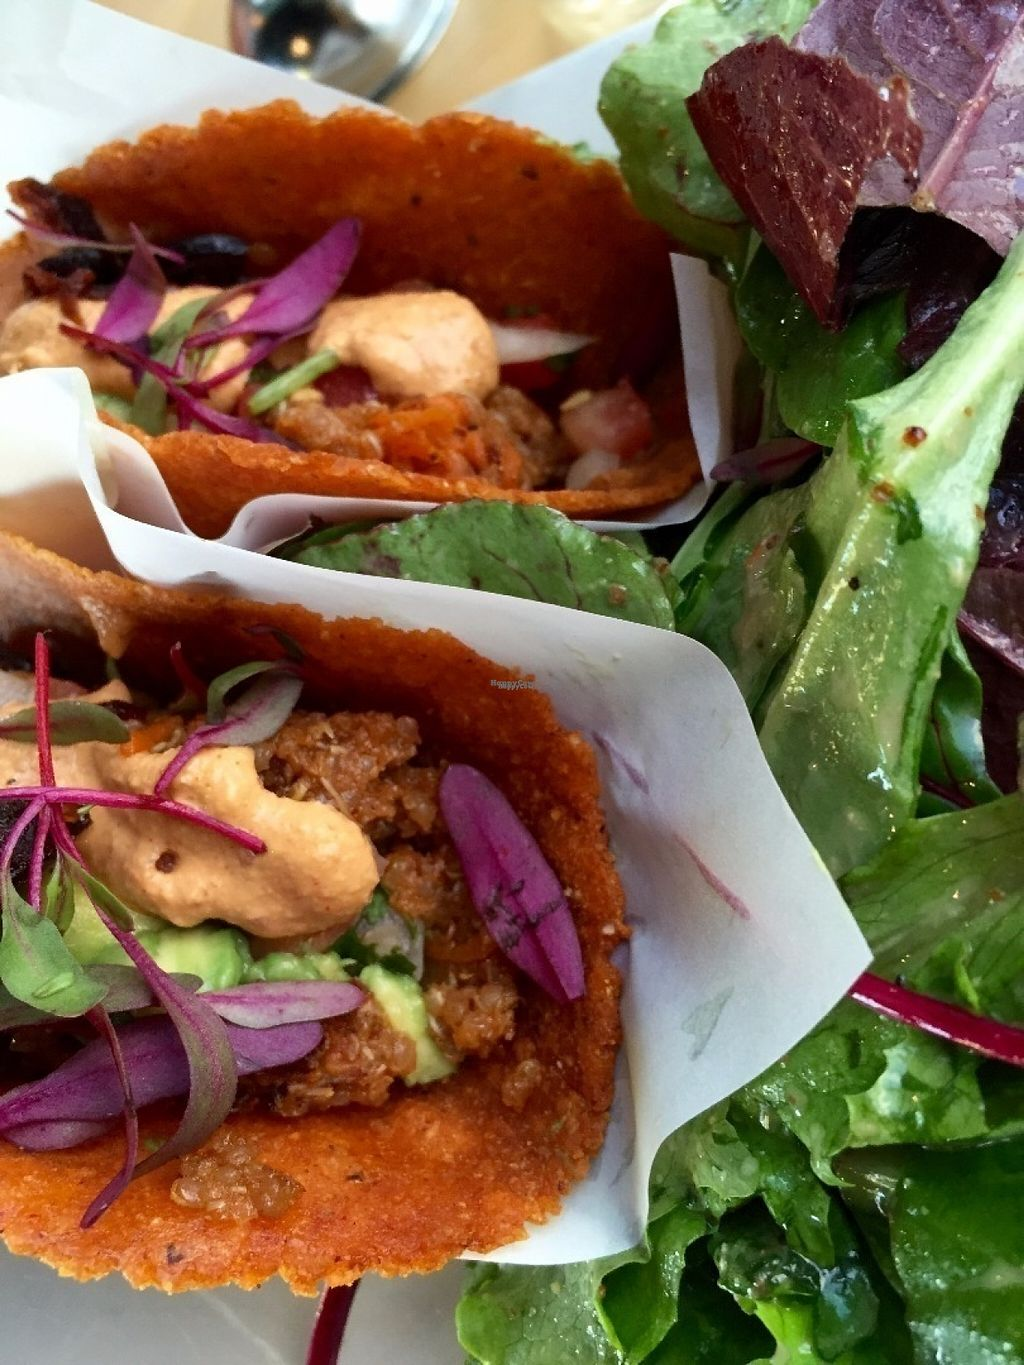 """Photo of Trilogy Sanctuary  by <a href=""""/members/profile/MelanieArce"""">MelanieArce</a> <br/>PERFECT TACOS!  <br/> August 6, 2016  - <a href='/contact/abuse/image/50264/166362'>Report</a>"""